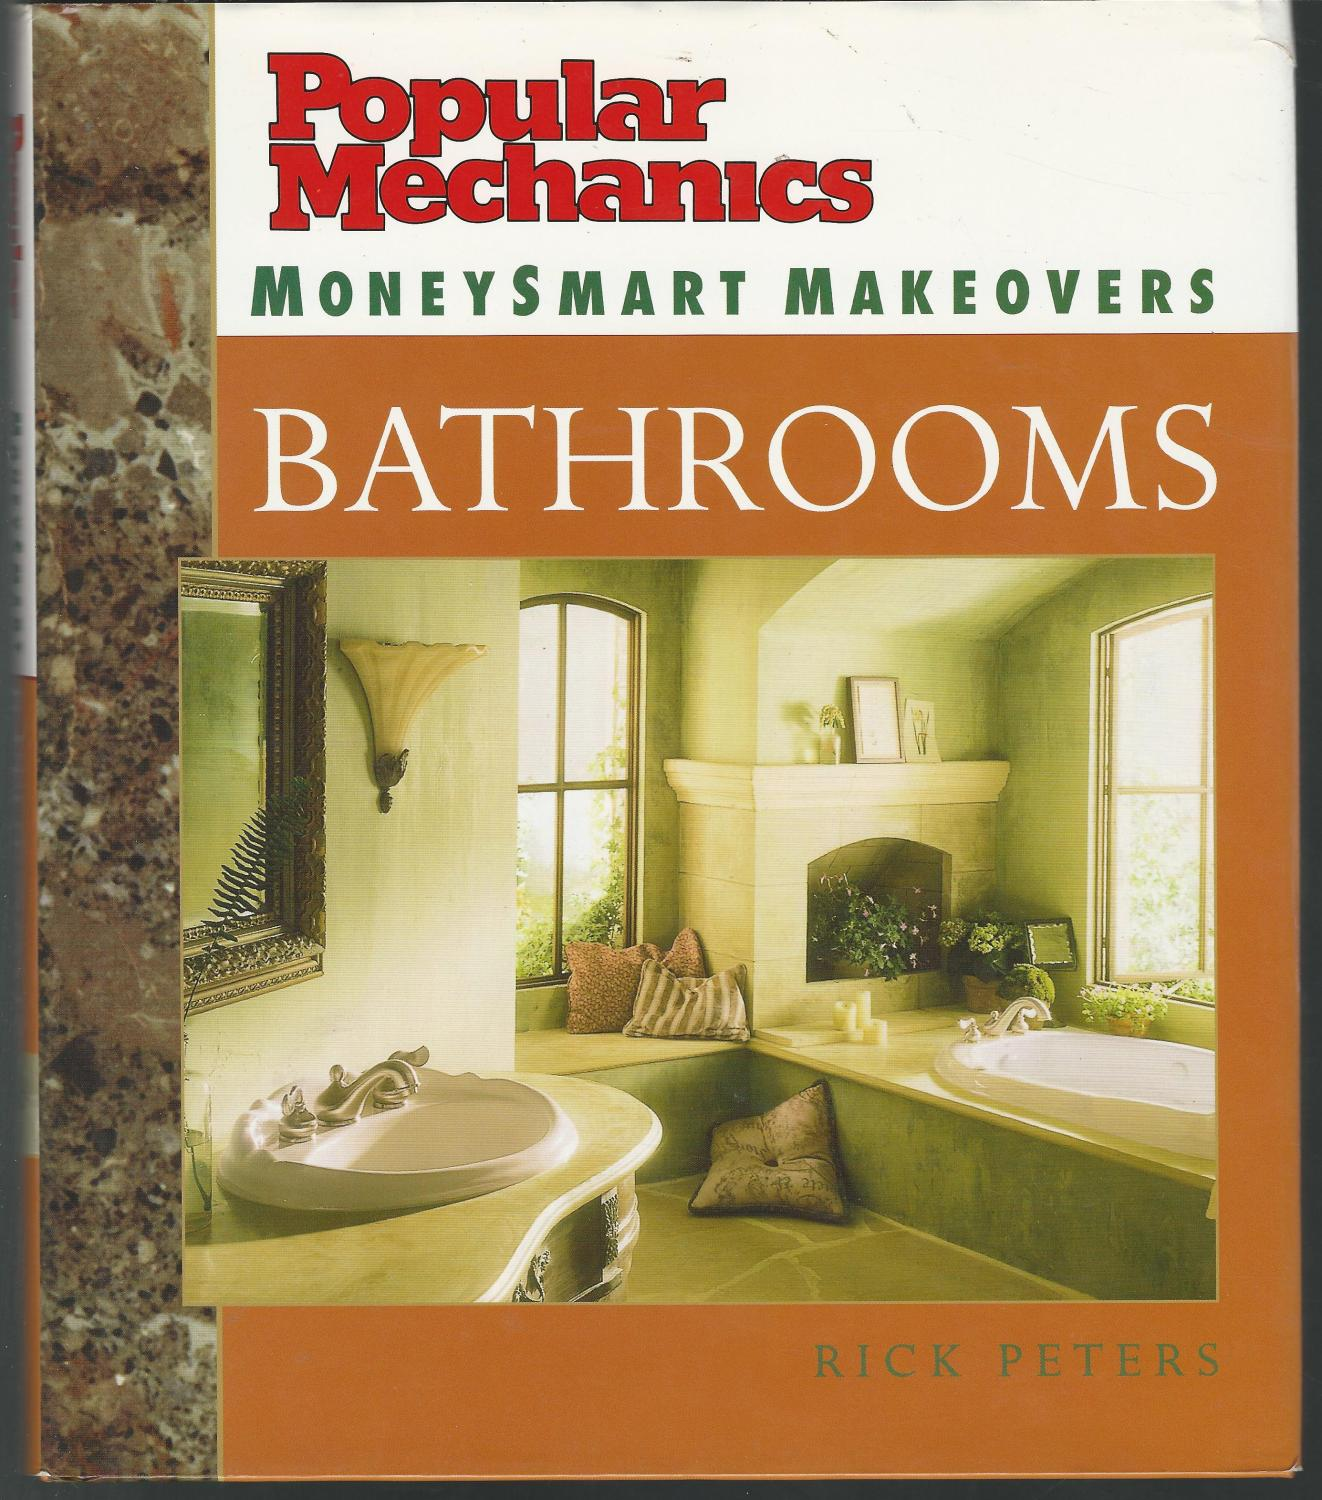 The Bathroom Makeover Book Novel Pdf Tally Solutions Book Pdf Free Download